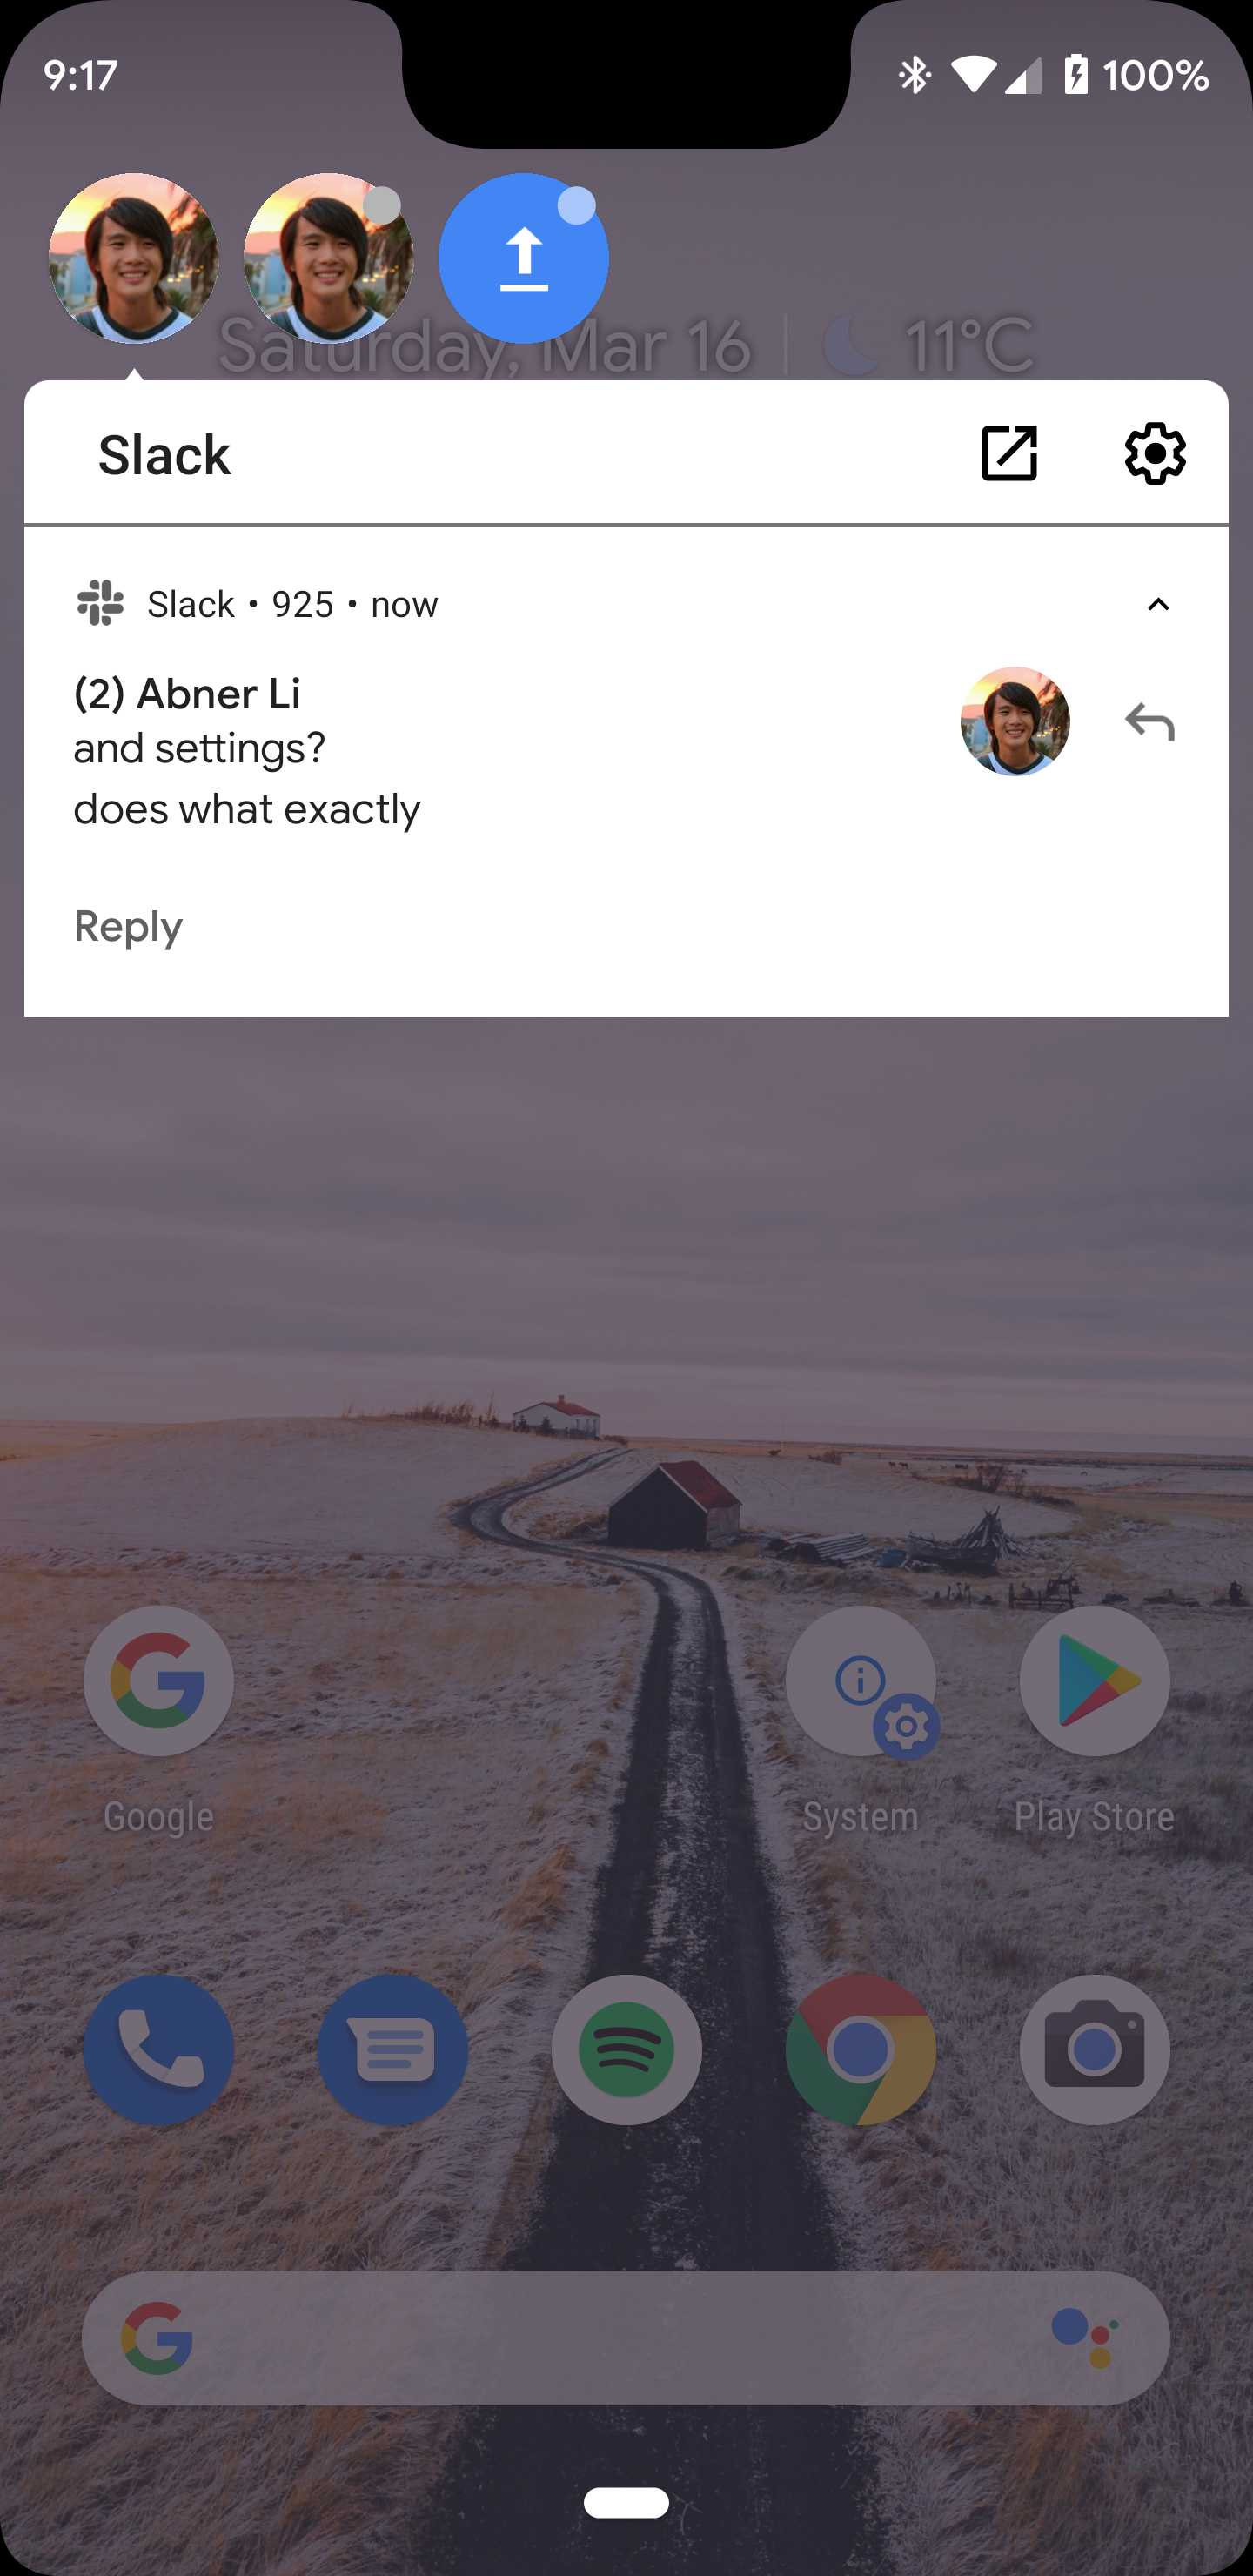 Android Q testing chat head 'bubbles' for notifications